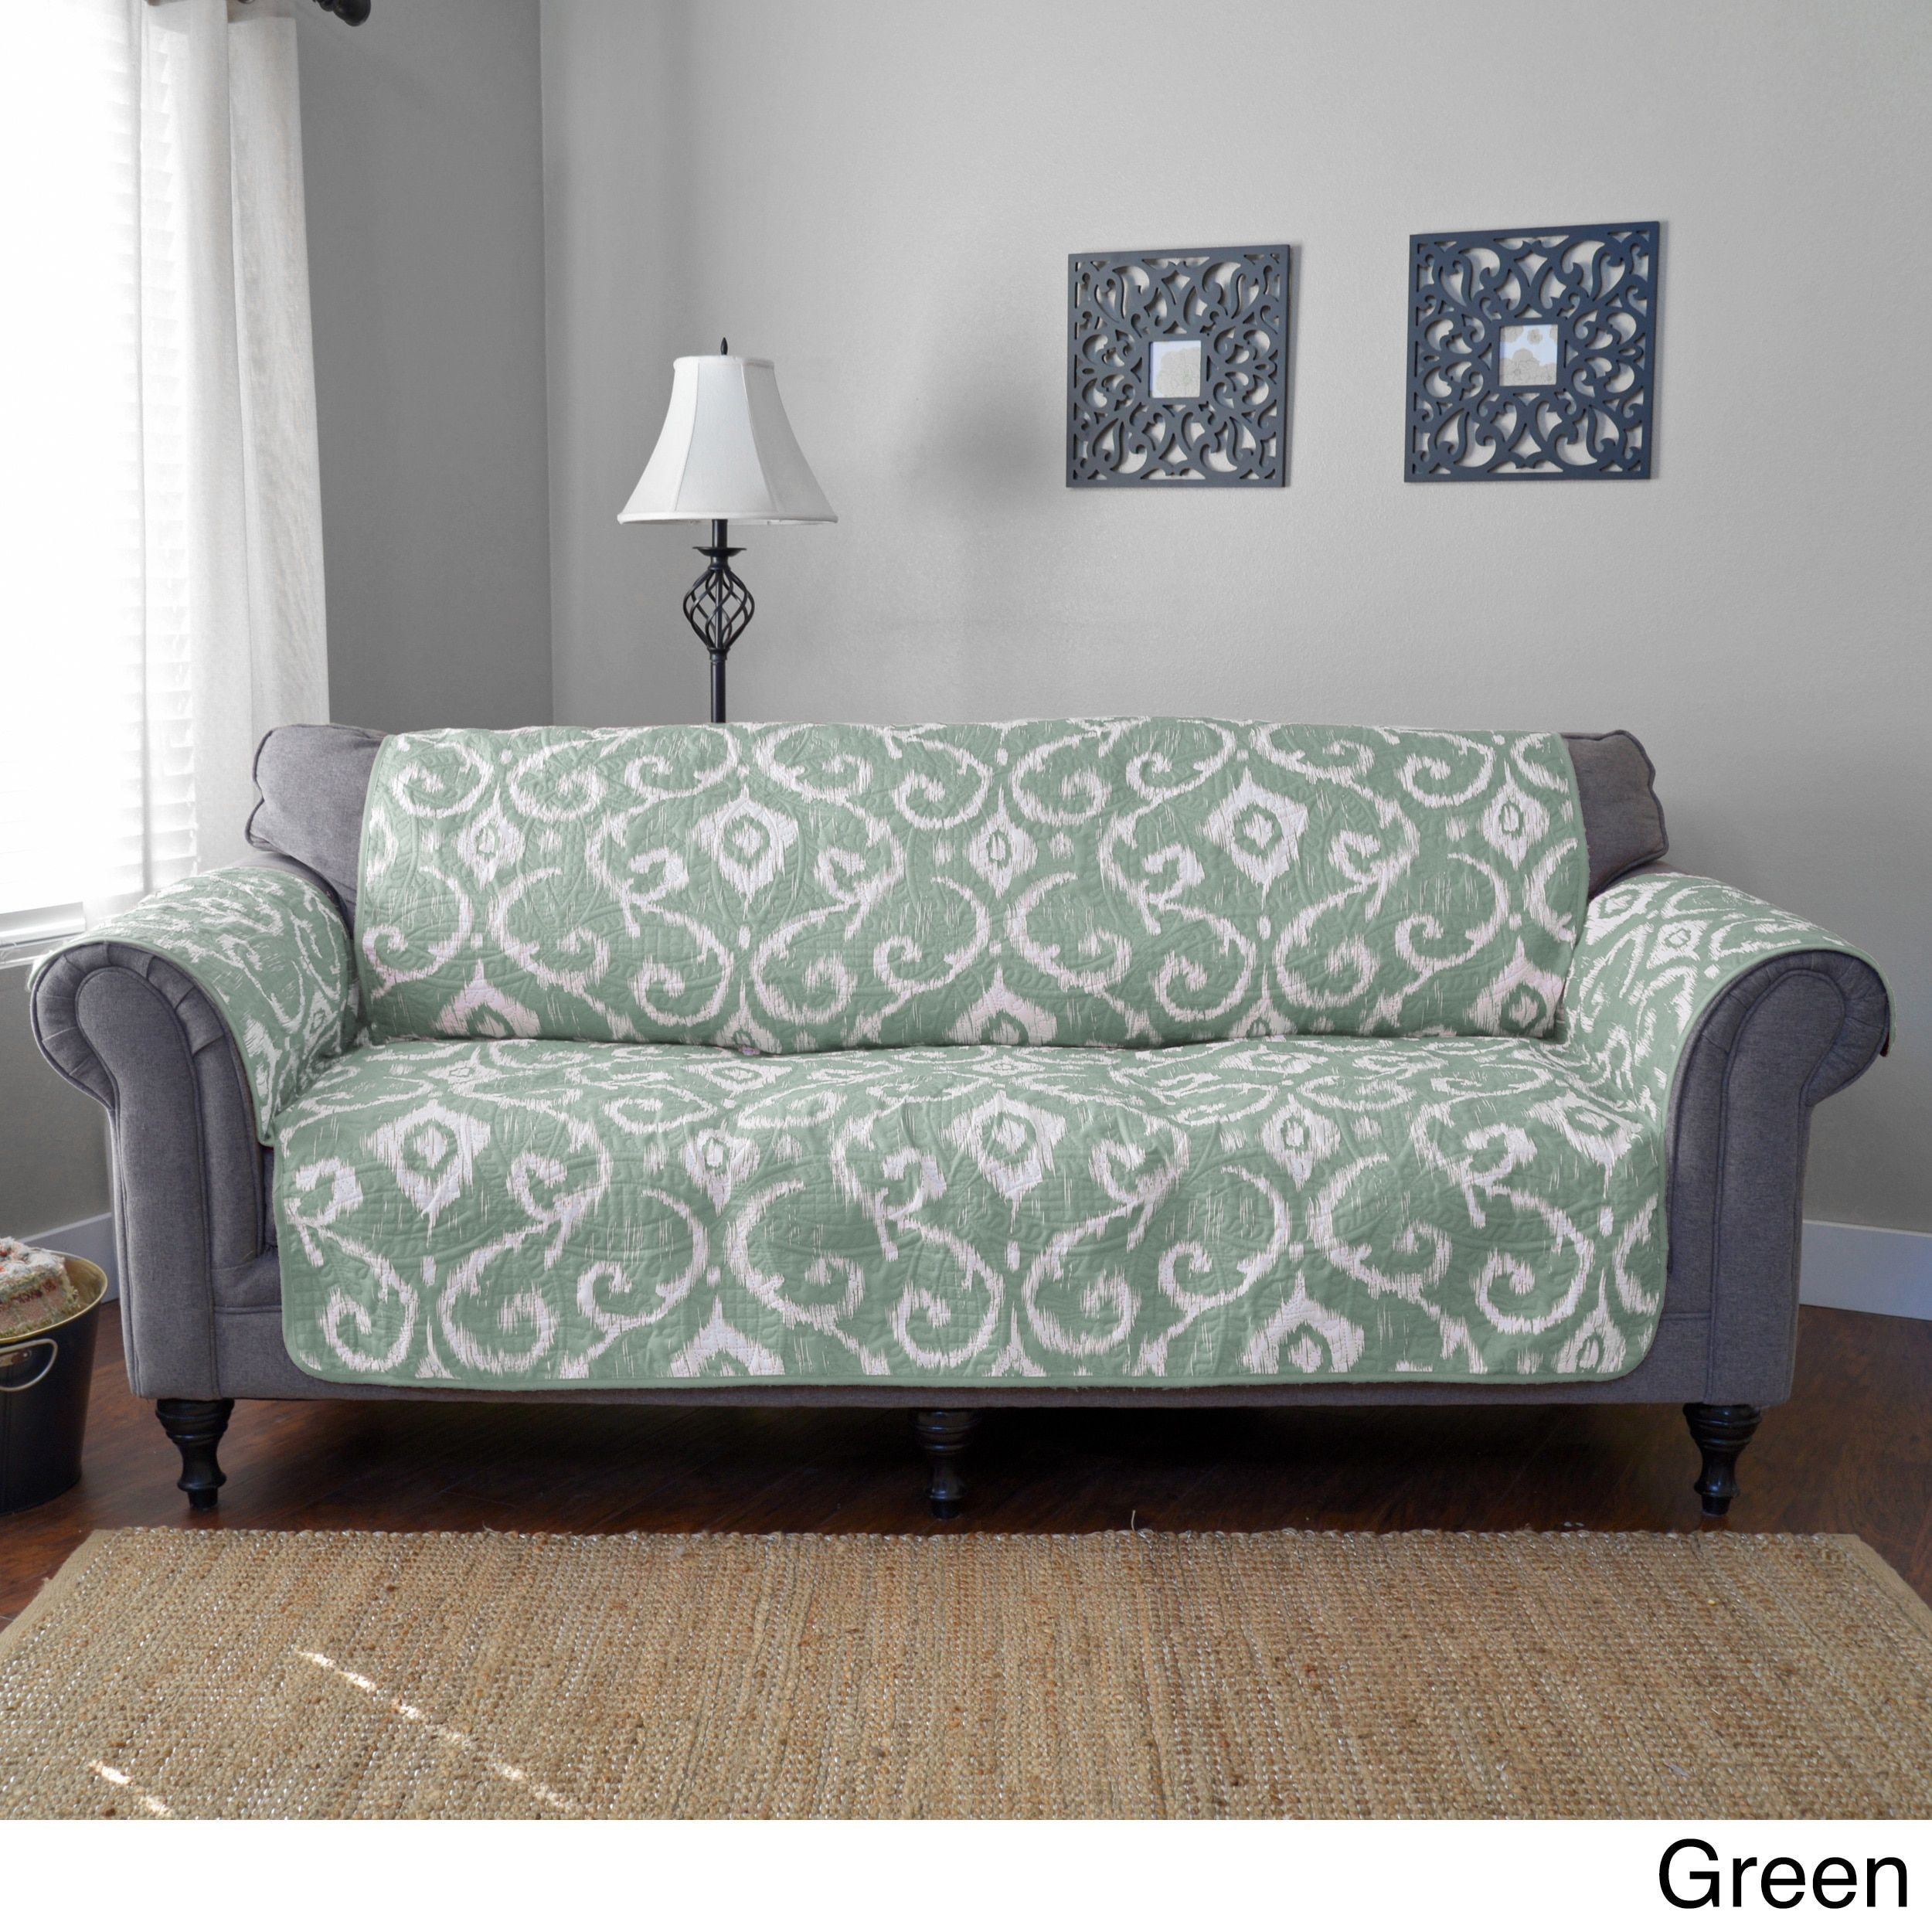 Journee Home Mia Reversible Printed Sofa Protector by Journee